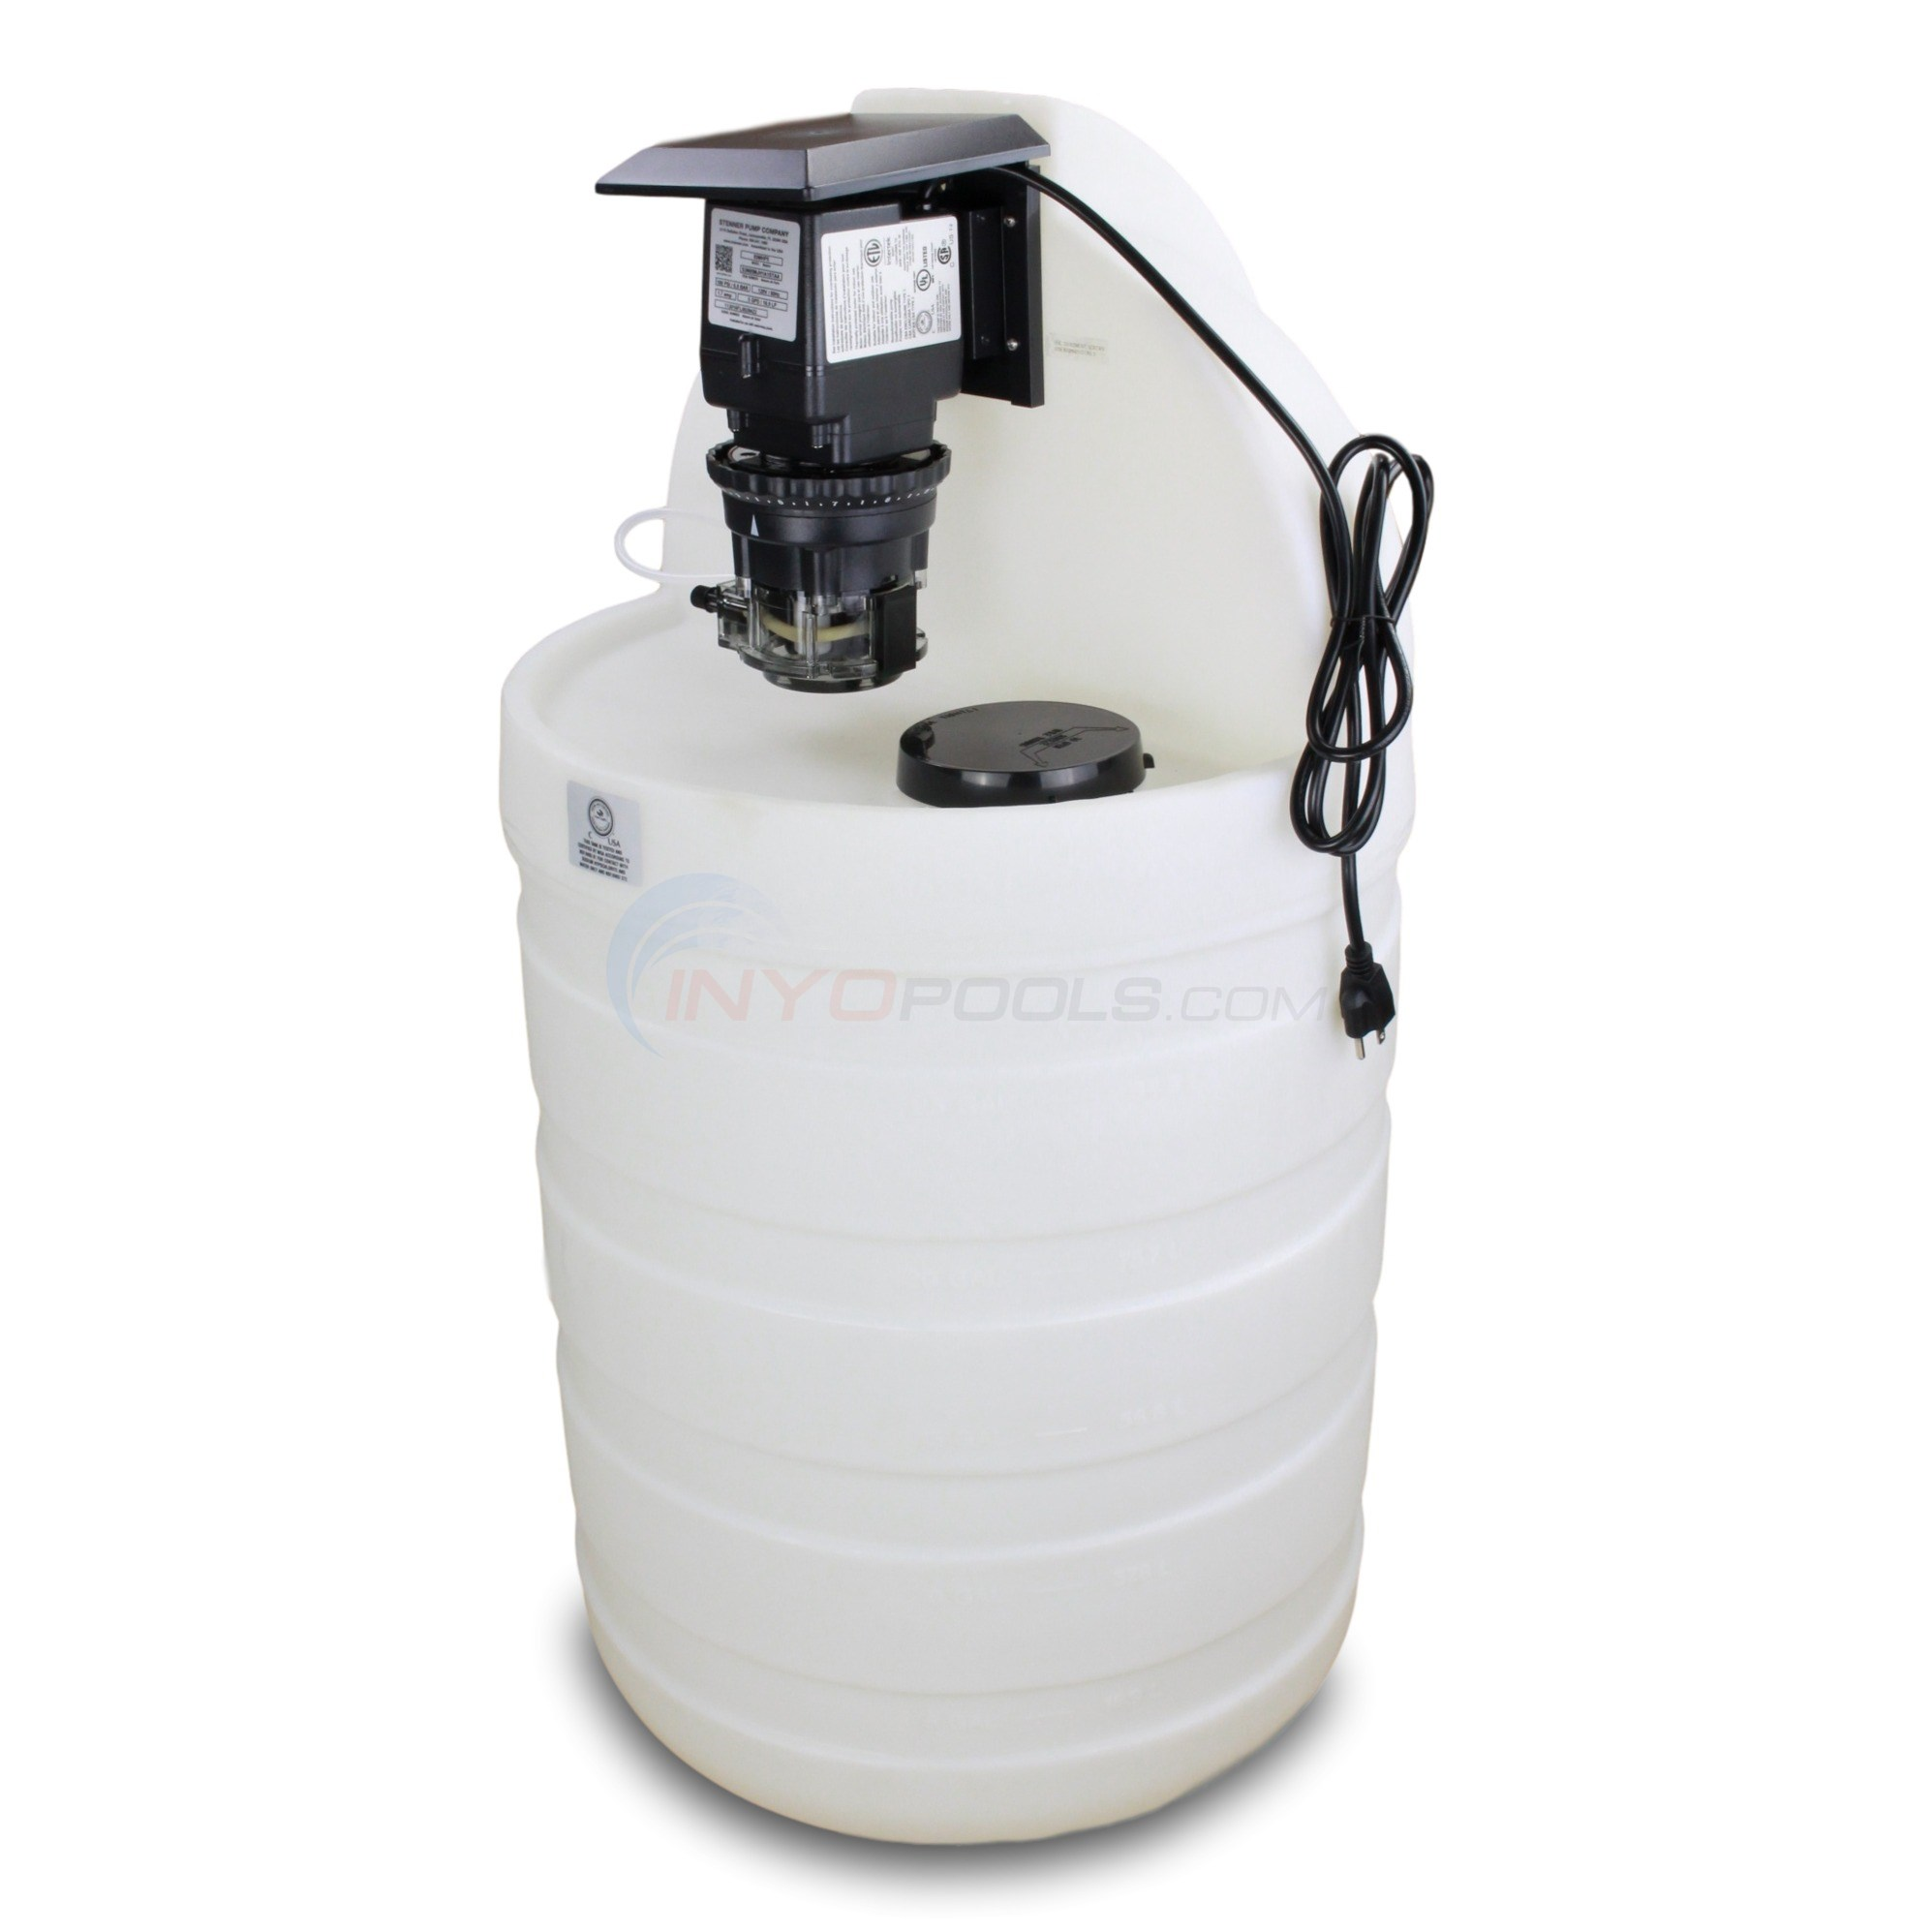 Stenner Pump w/ 30 Gal. Natural Tank System